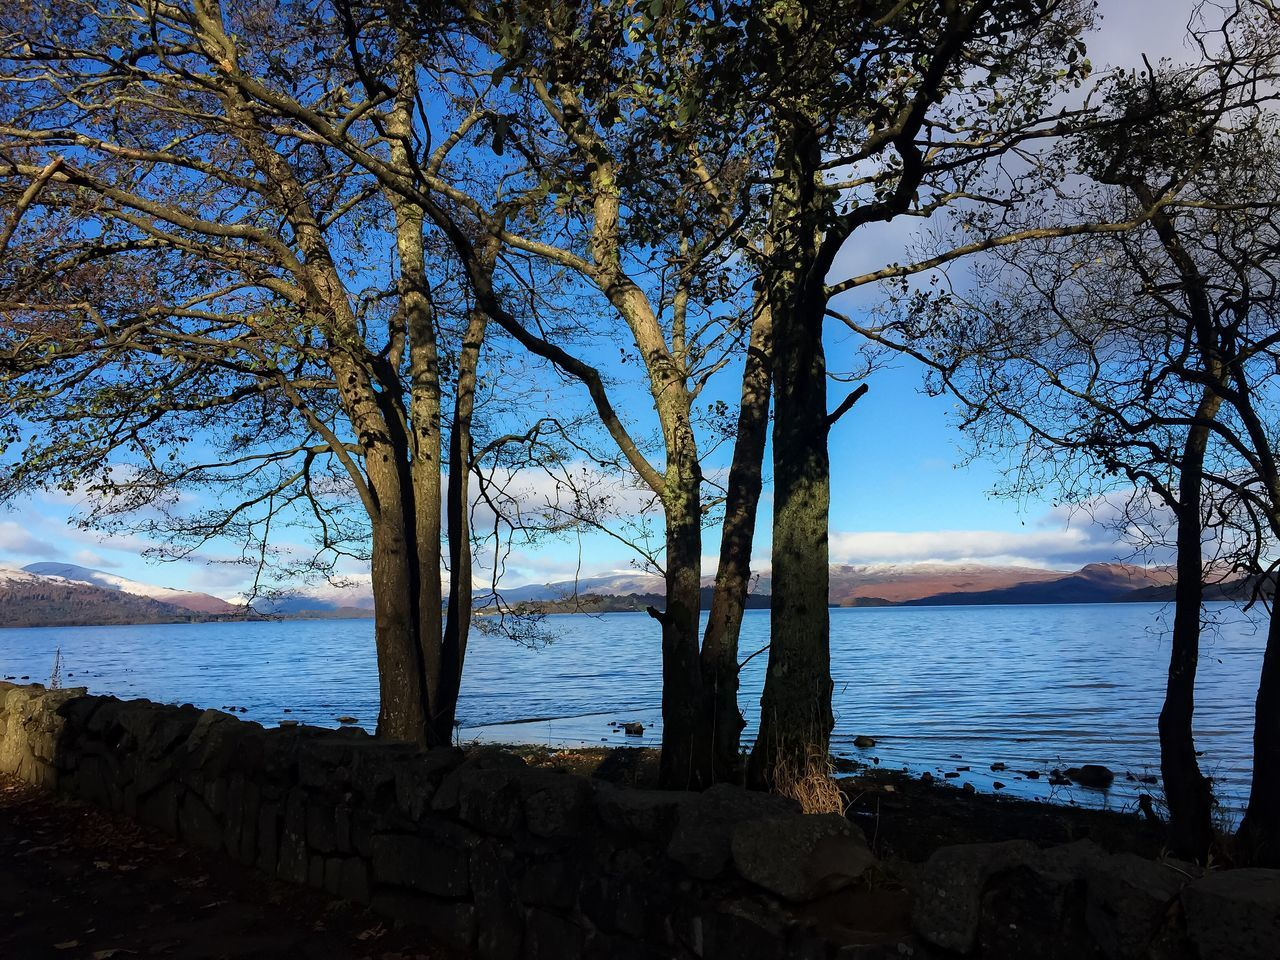 Water Outdoors Tree Tree Trunk Bare Tree Growth Landscape Tranquil Scene Non-urban Scene Scenics No People Day Focus On Foreground Rural Scene LochLomond Beautiful Day